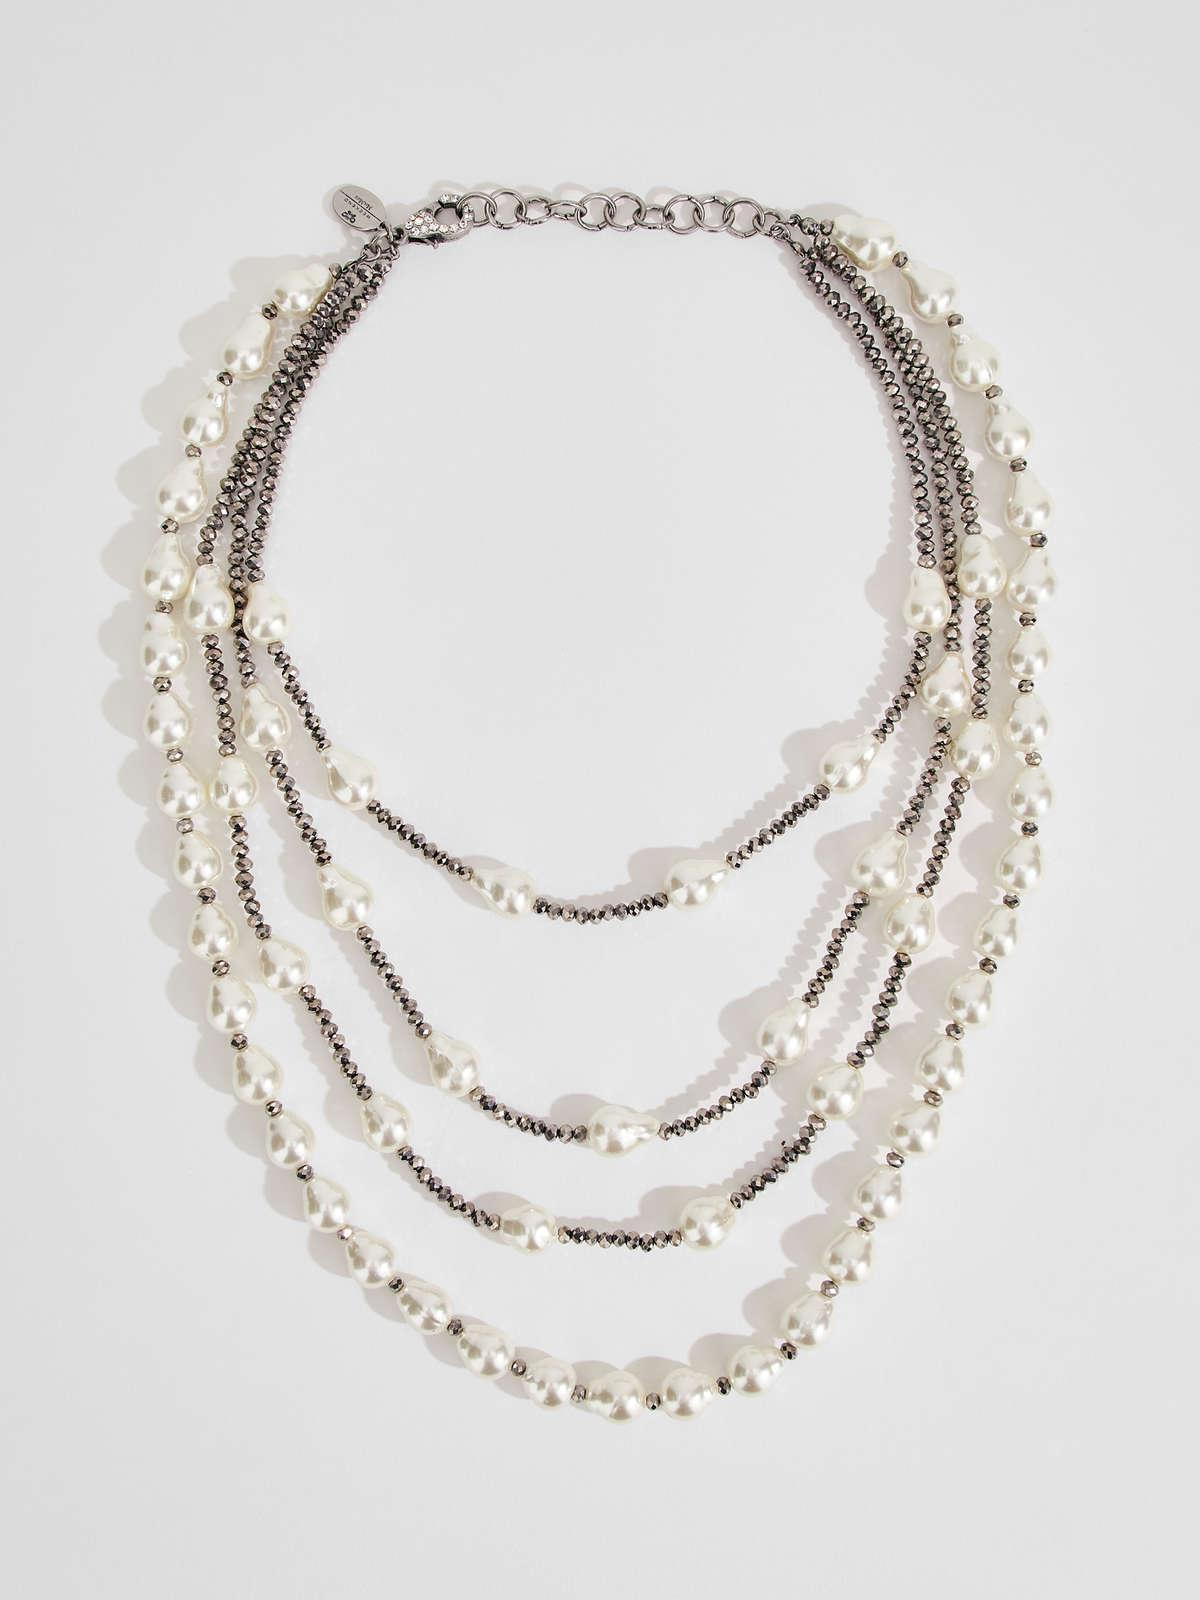 Womens Max Mara Jewelry | Multi-Strand Necklace With Beads Natural